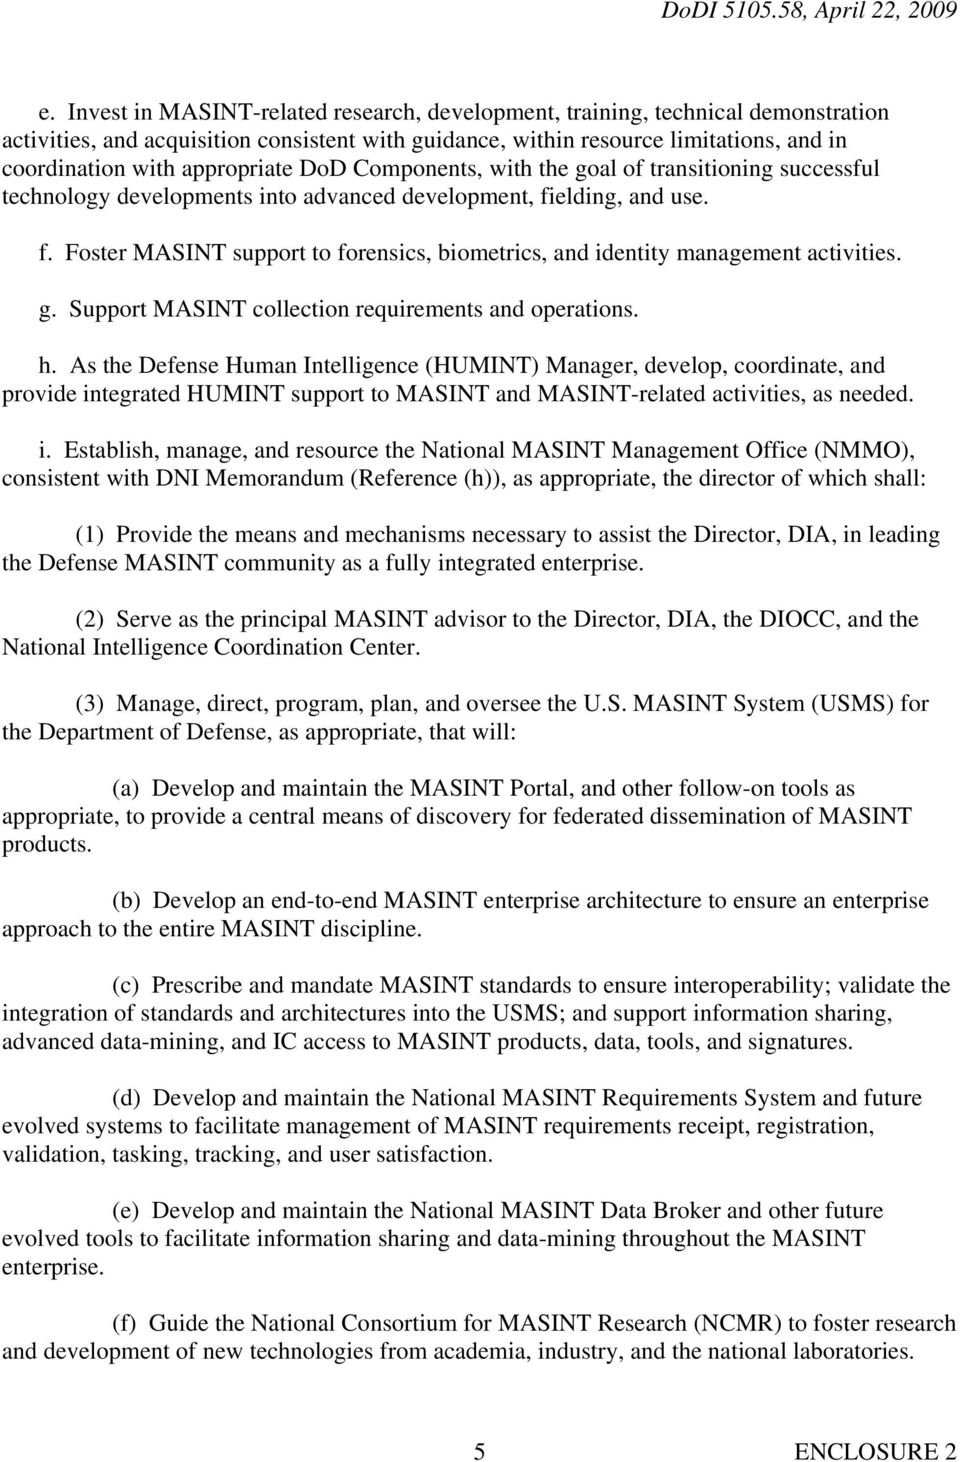 elding, and use. f. Foster MASINT support to forensics, biometrics, and identity management activities. g. Support MASINT collection requirements and operations. h.